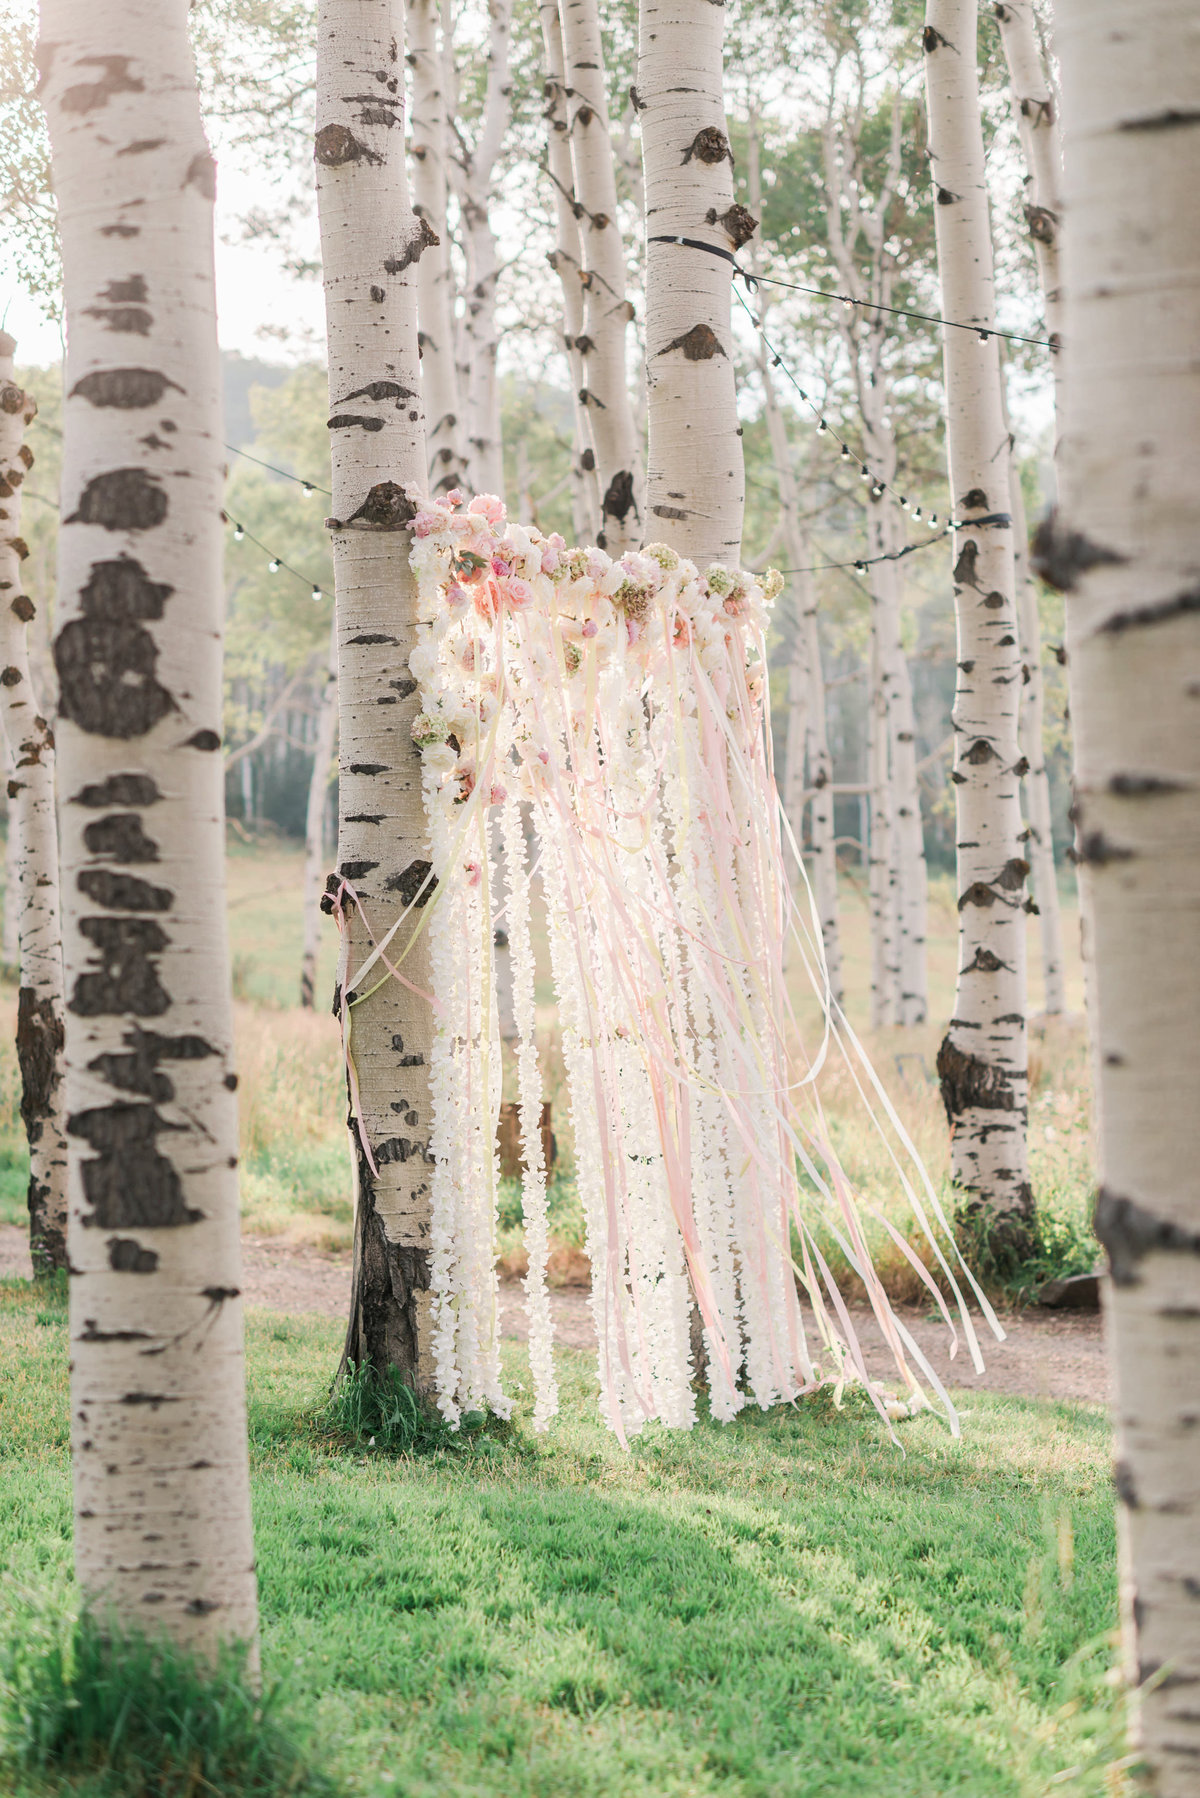 Kari_Ryan_Anderson_Colorado_Outdoor_Chapel_Wedding_Valorie_Darling_Photography - 107 of 126